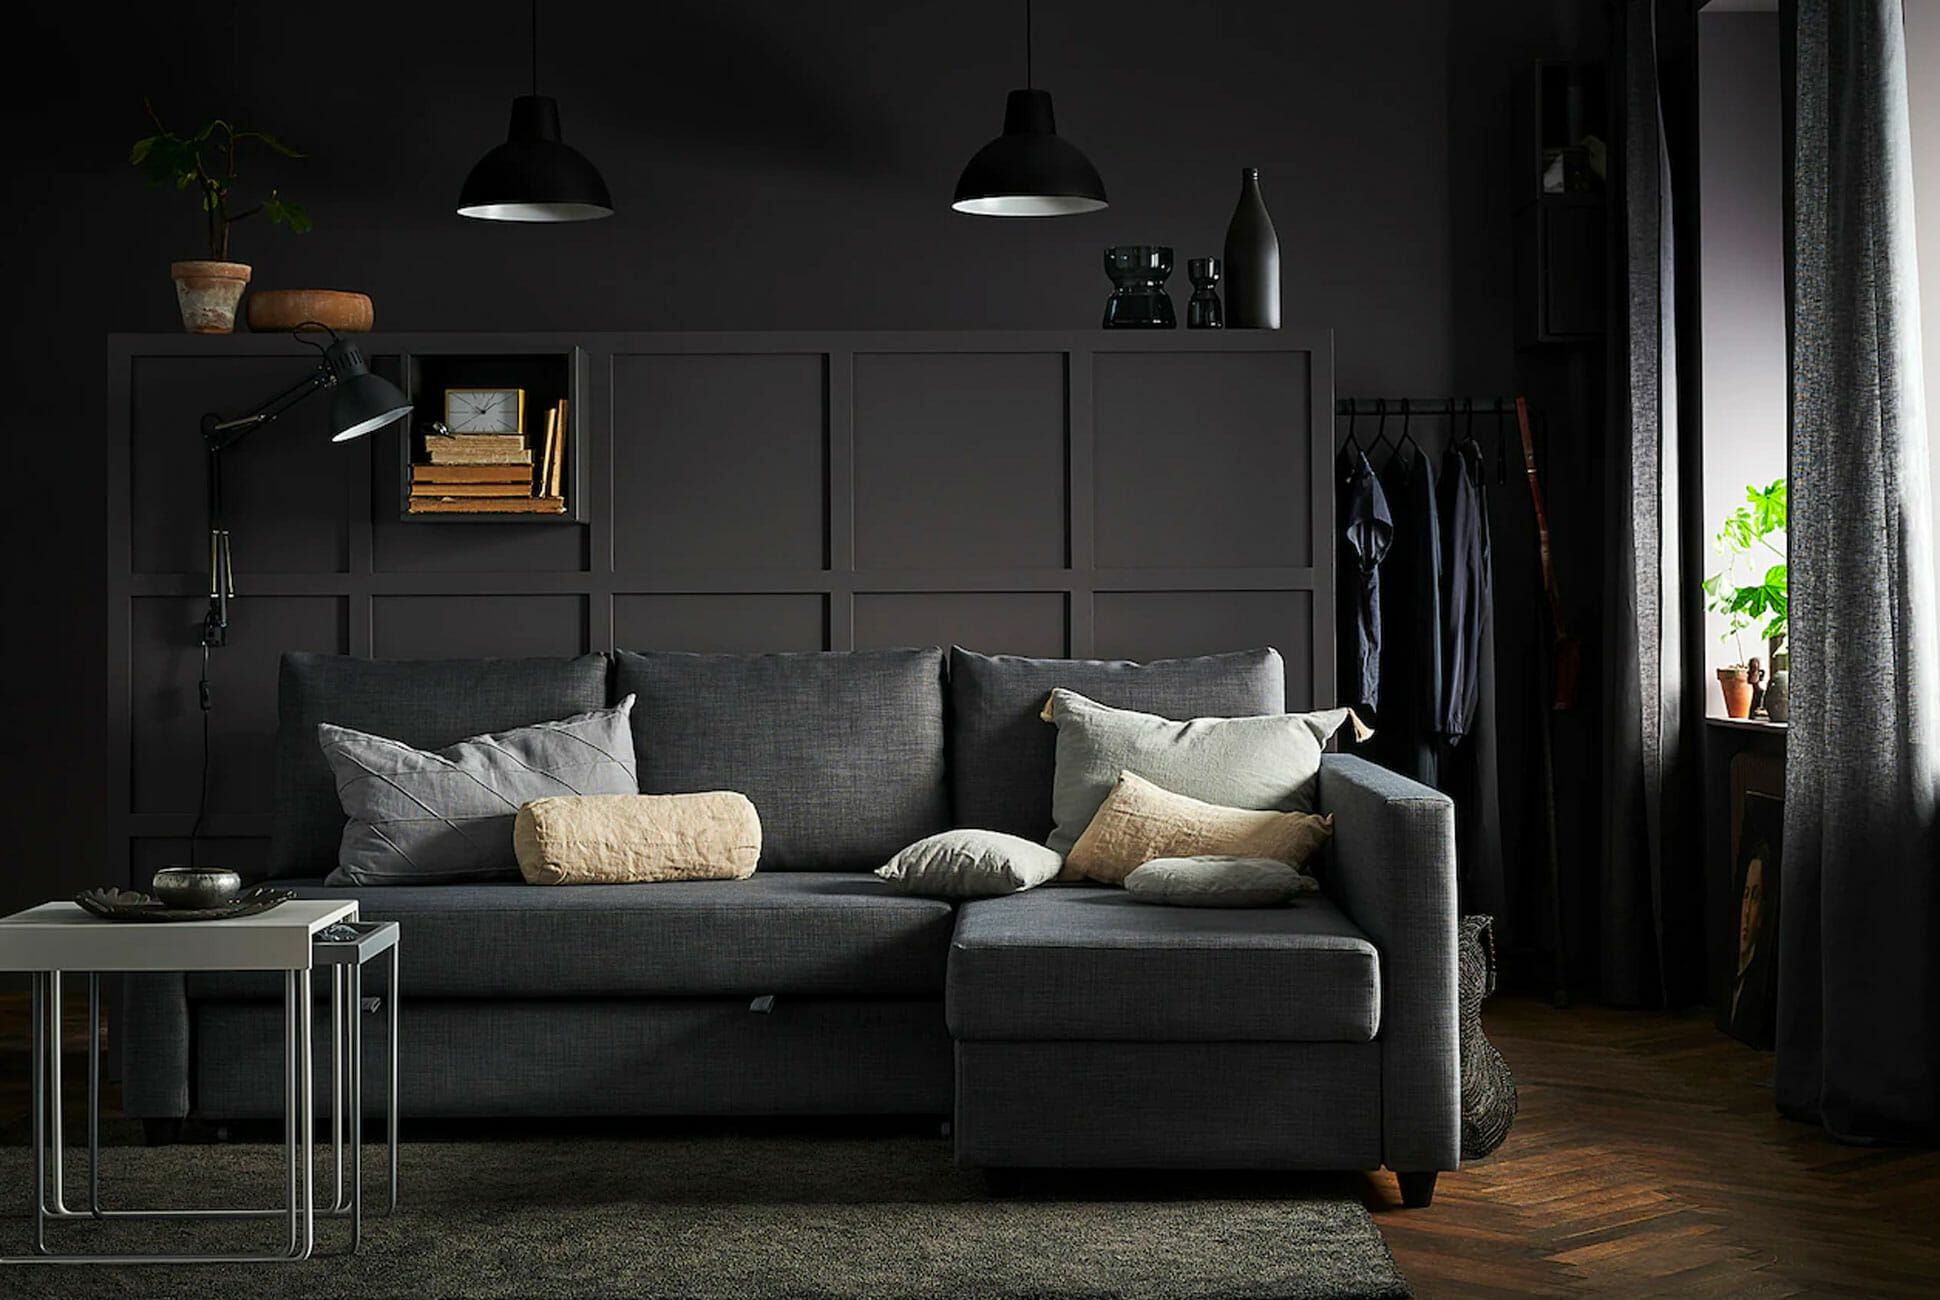 - The 10 Best Sleeper Sofas, Sofa Beds And Futons You Can Buy In